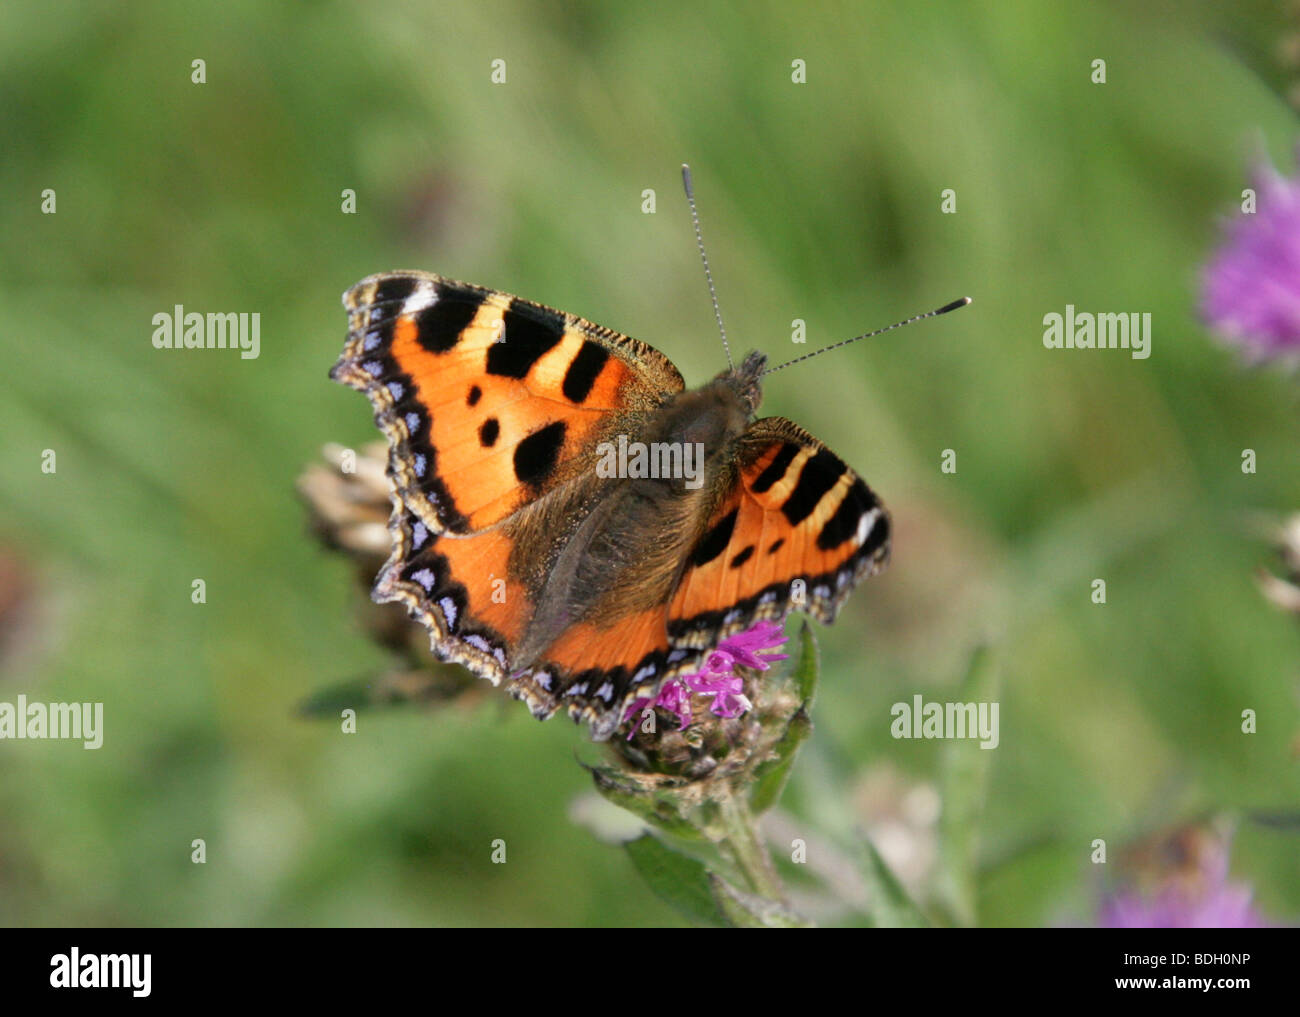 Small Tortoiseshell Butterfly, Nymphalis urticae, Nymphalidae - Stock Image